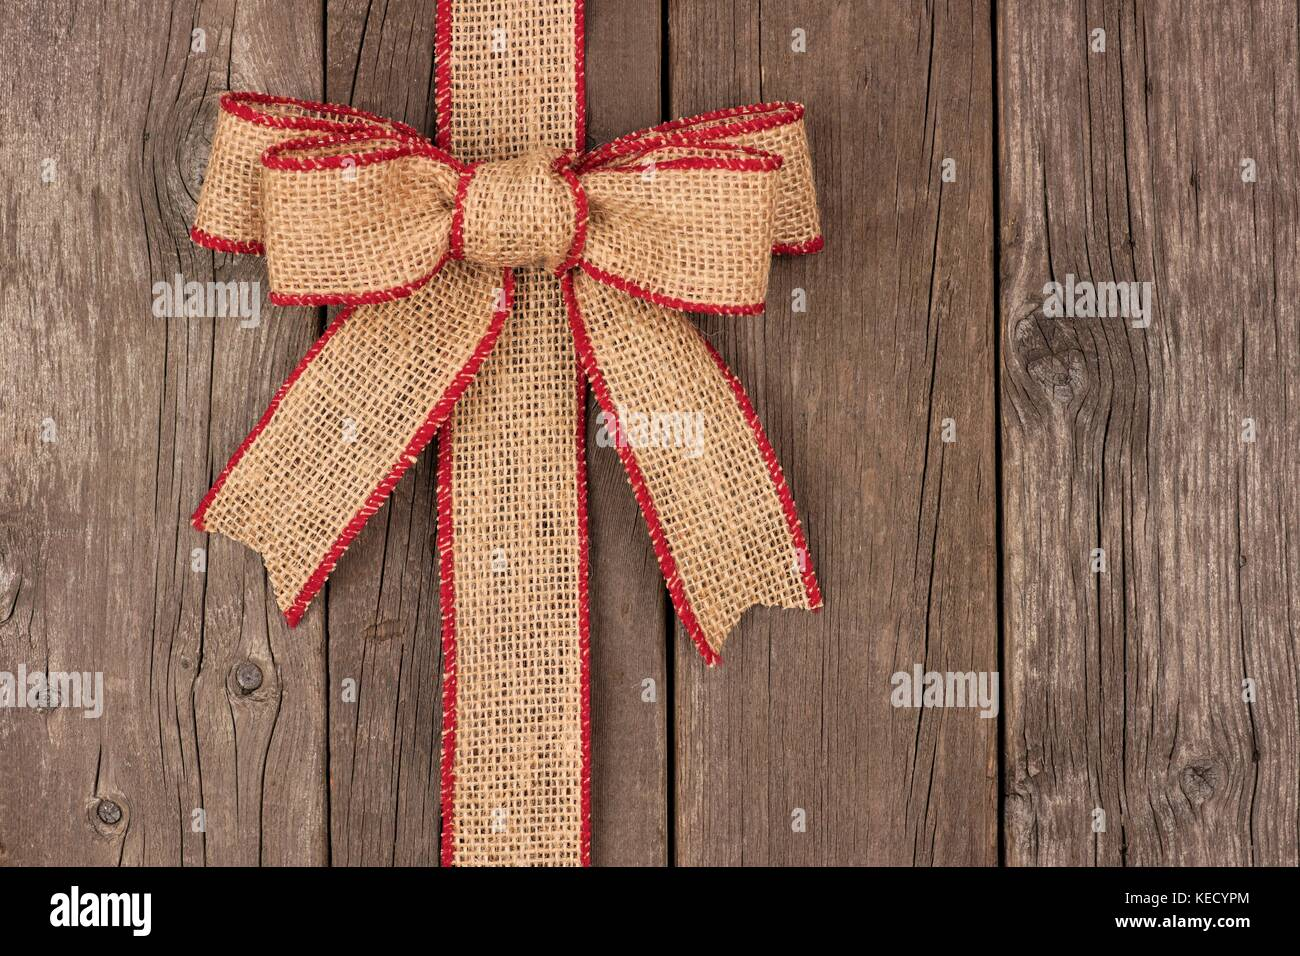 how to draw a bow ribbon side view